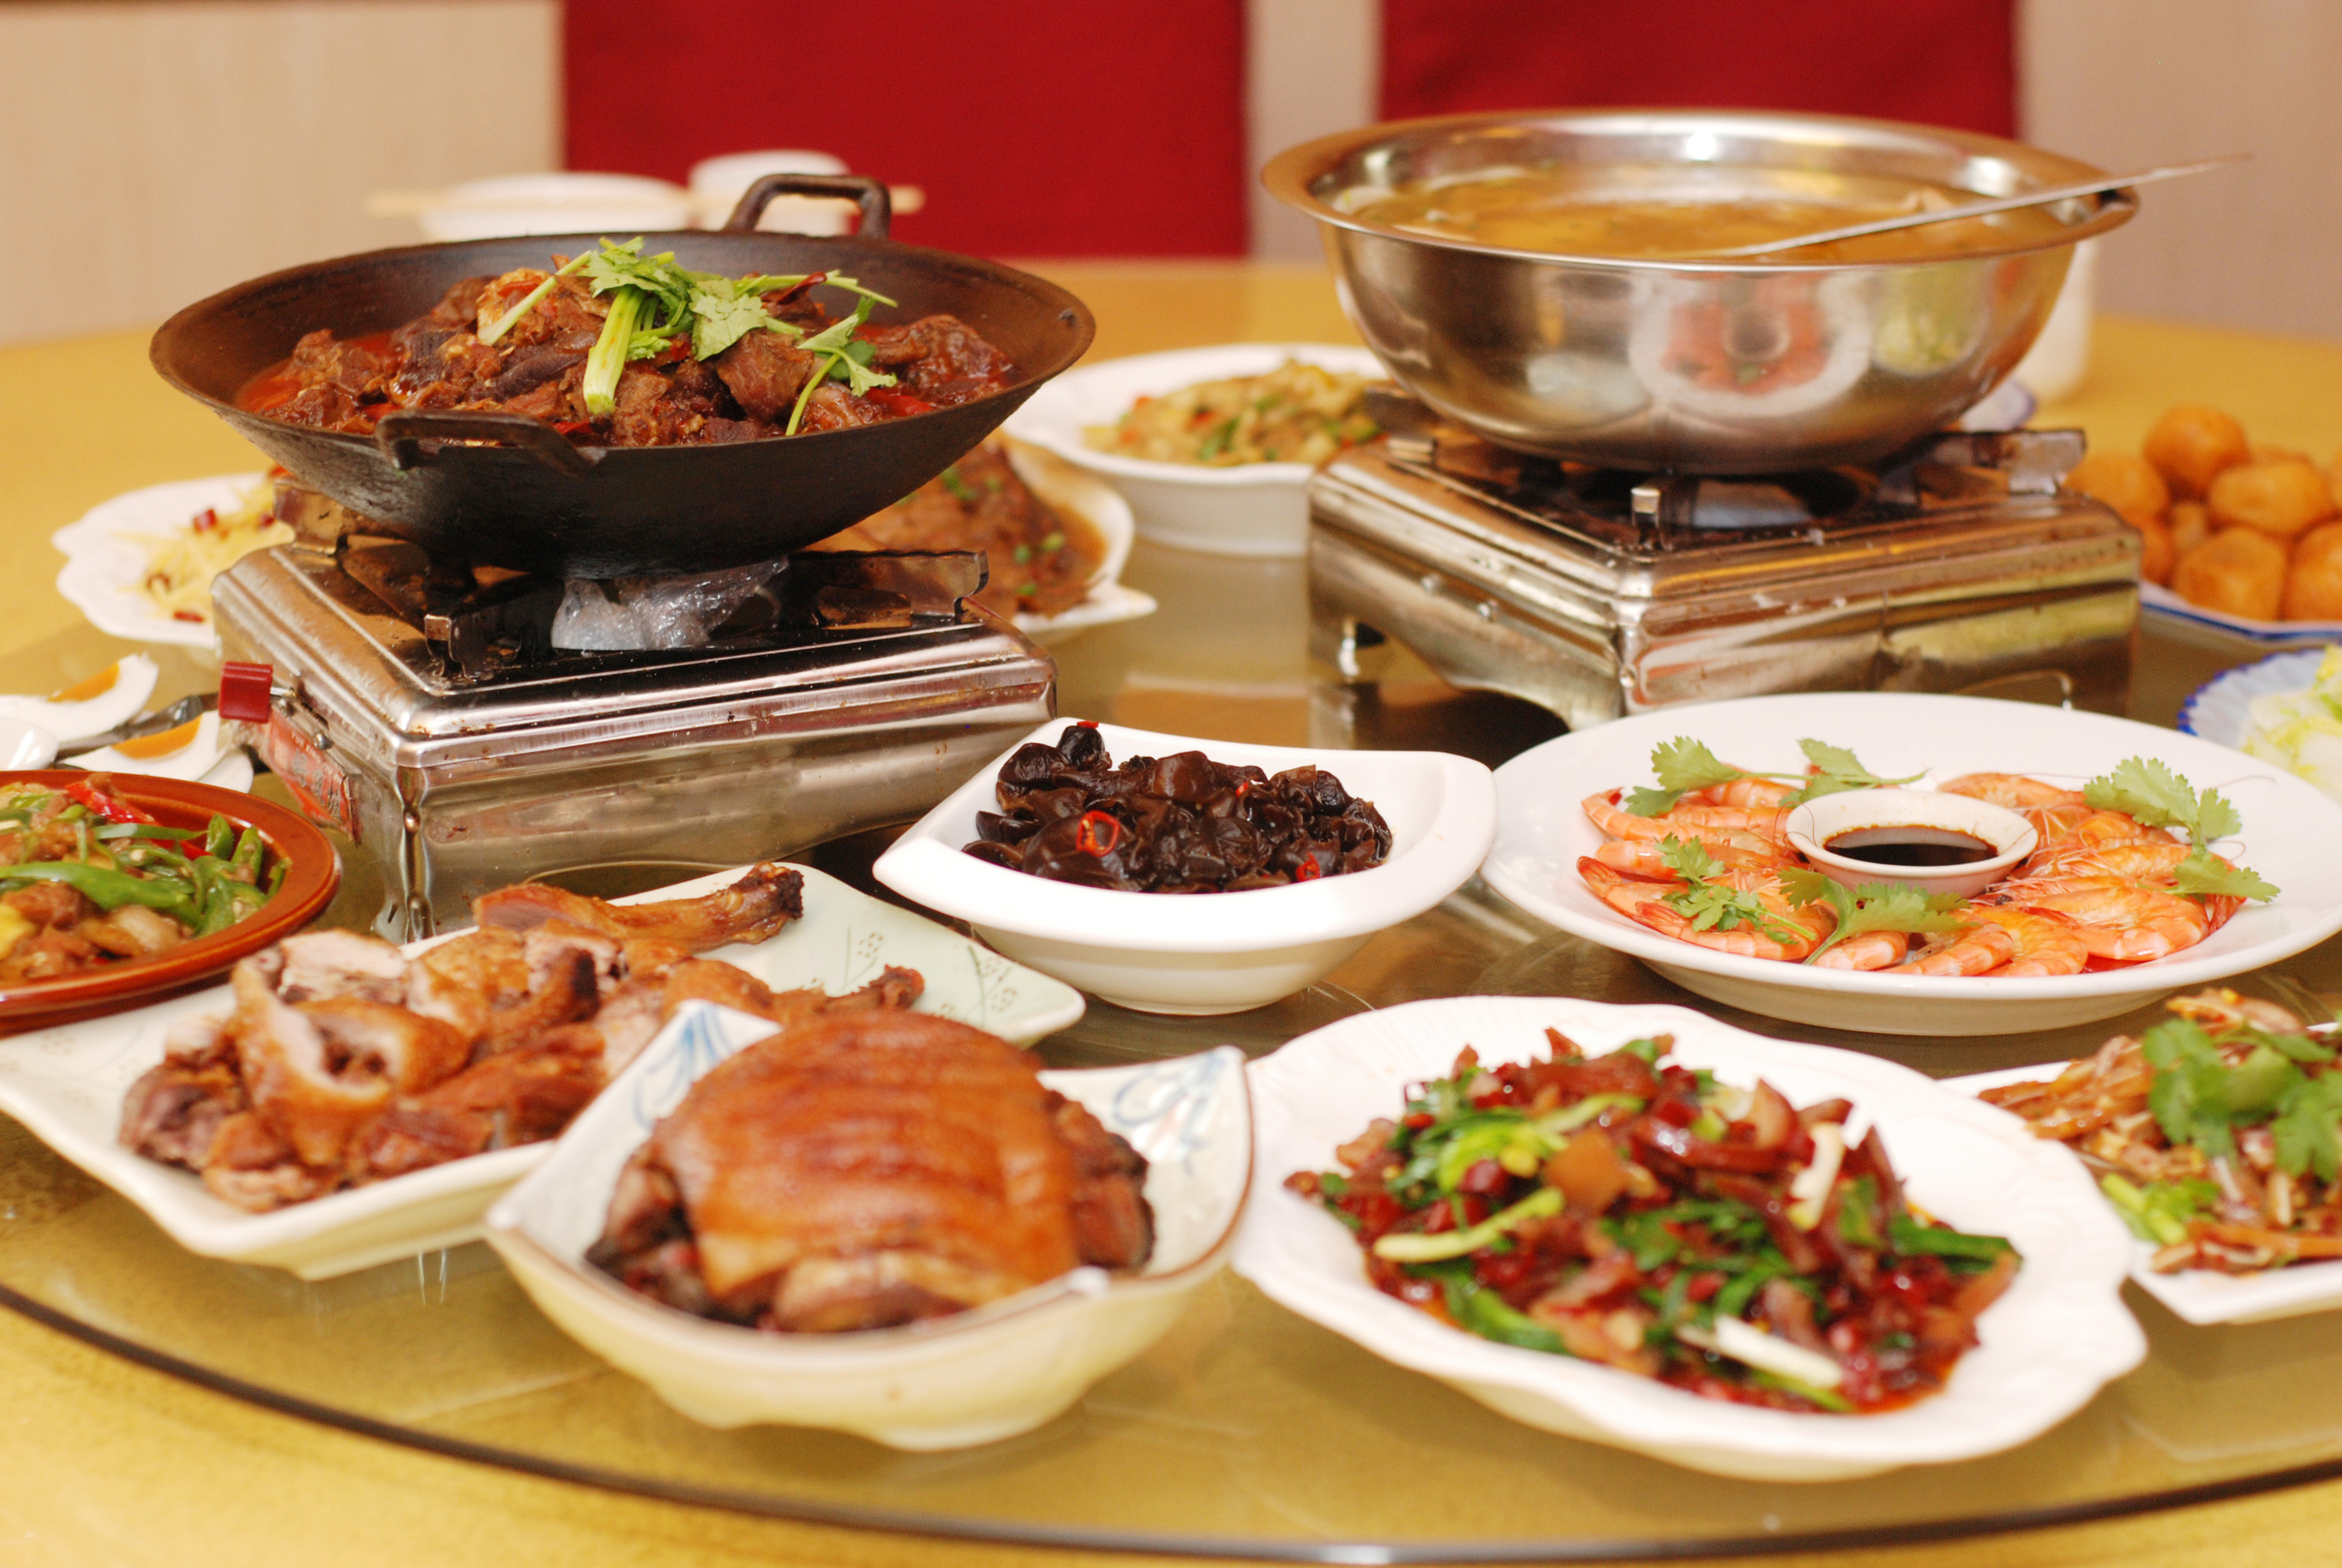 catering banquet chinese style